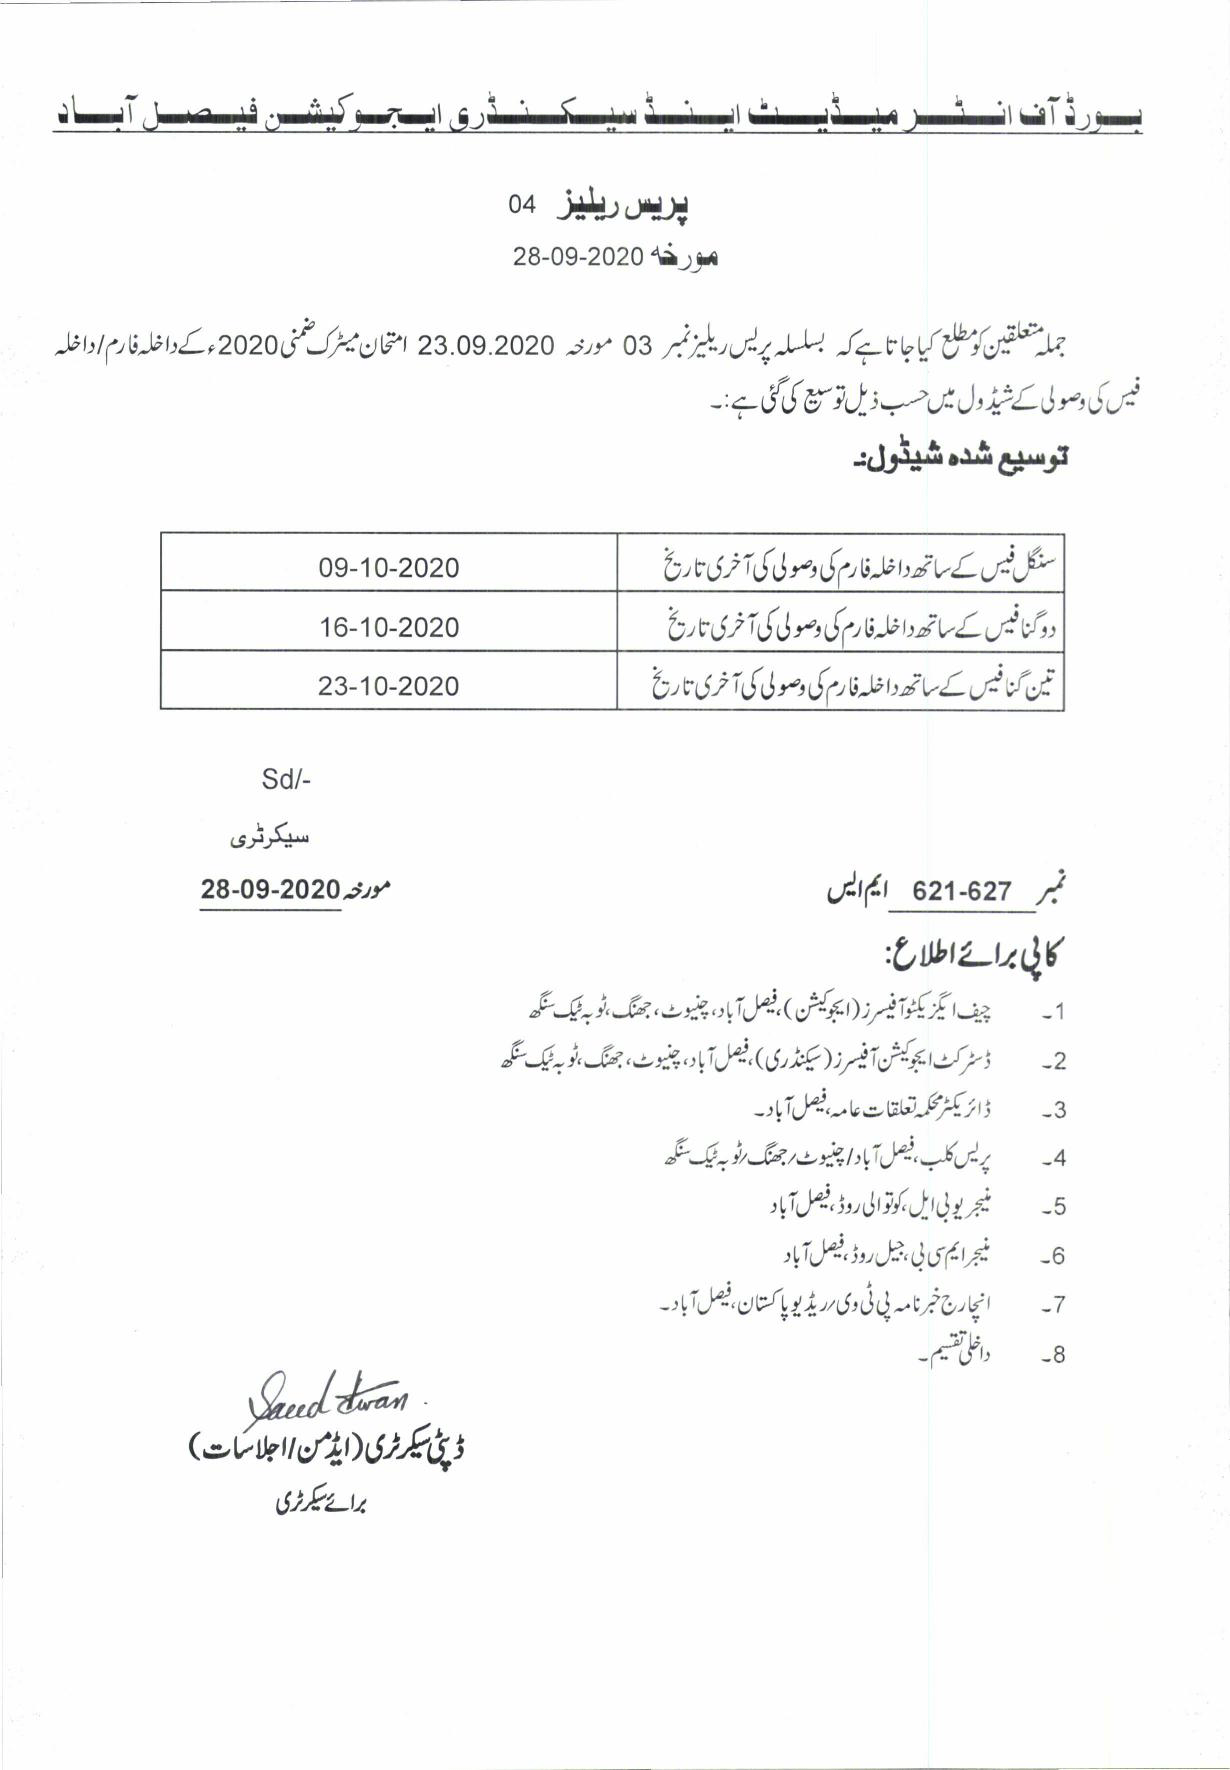 Extension in Date of Admission Form Fee Supplementary Exam 2020 BISE Faisalabad